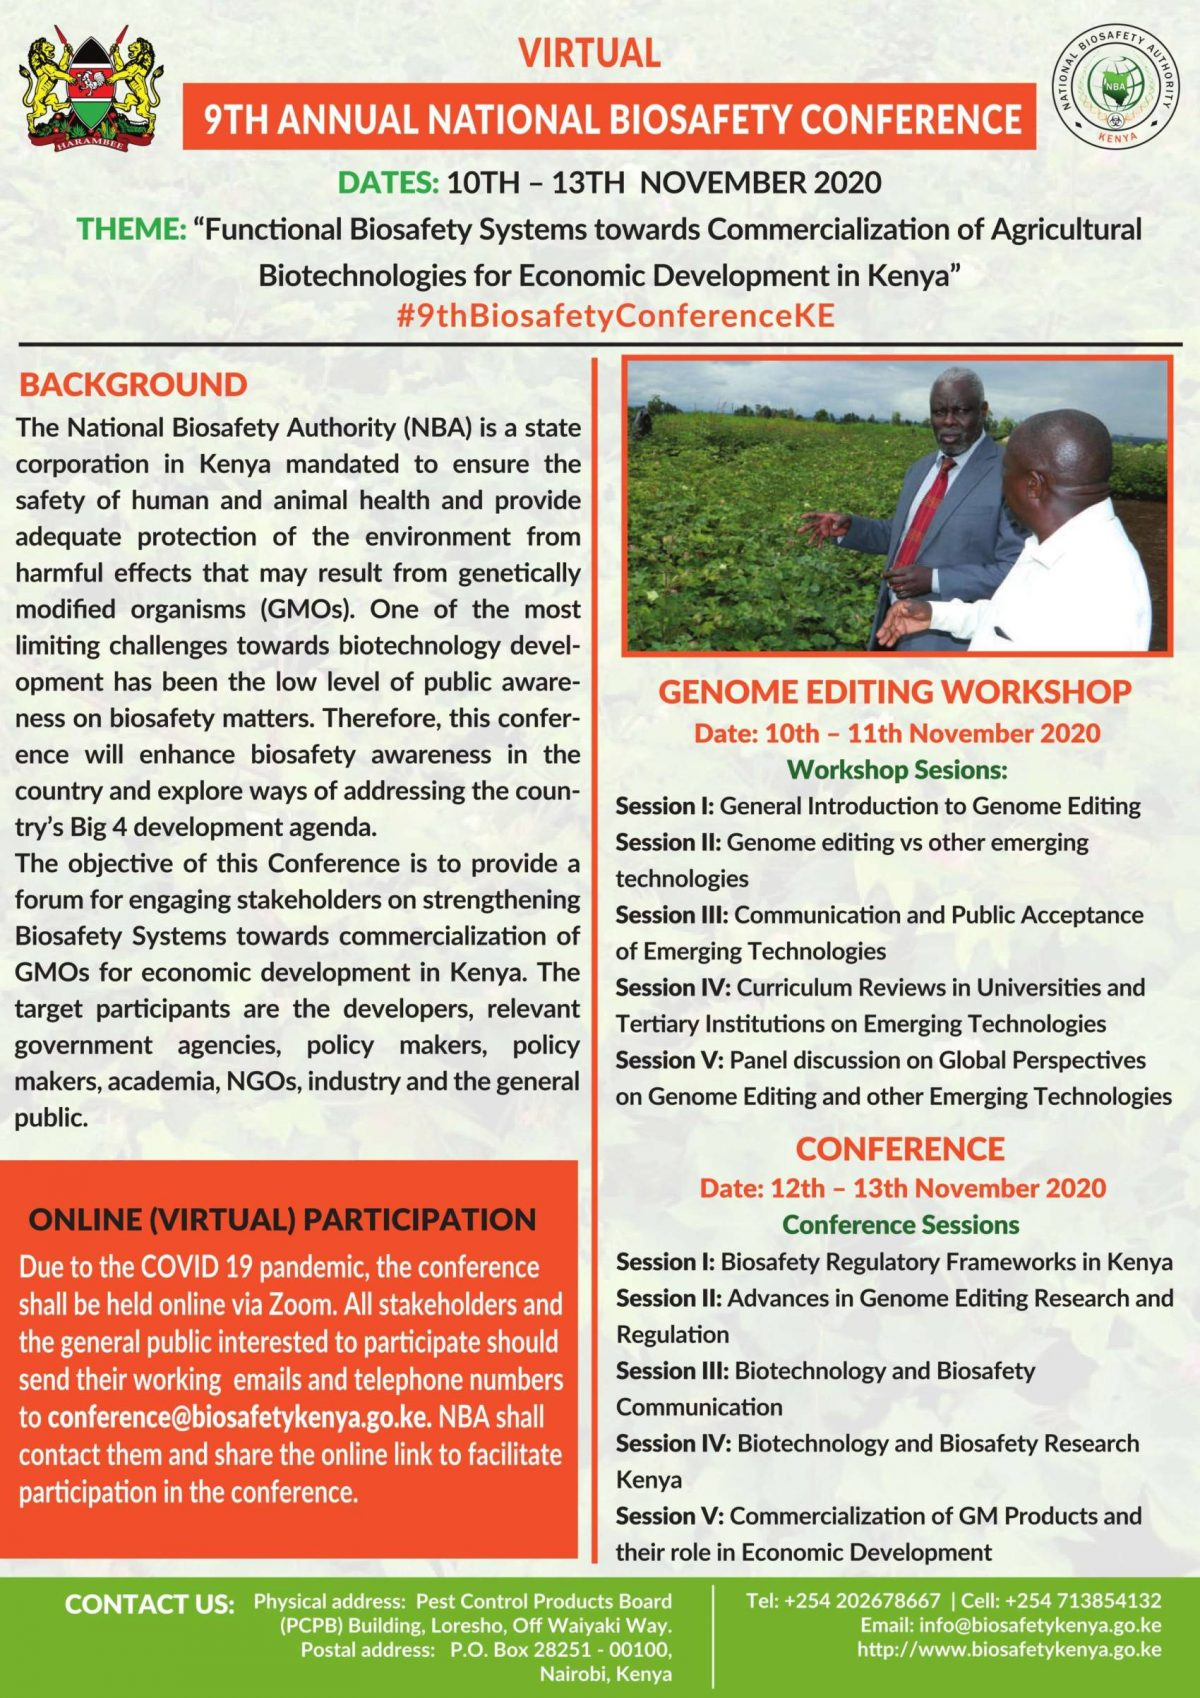 INVITATION TO 9TH ANNUAL BIOSAFETY VIRTUAL CONFERENCE ORGANIZED BY THE NATIONAL BIOSAFETY AUTHORITY, 12 TH -13 TH NOVEMBER 2020